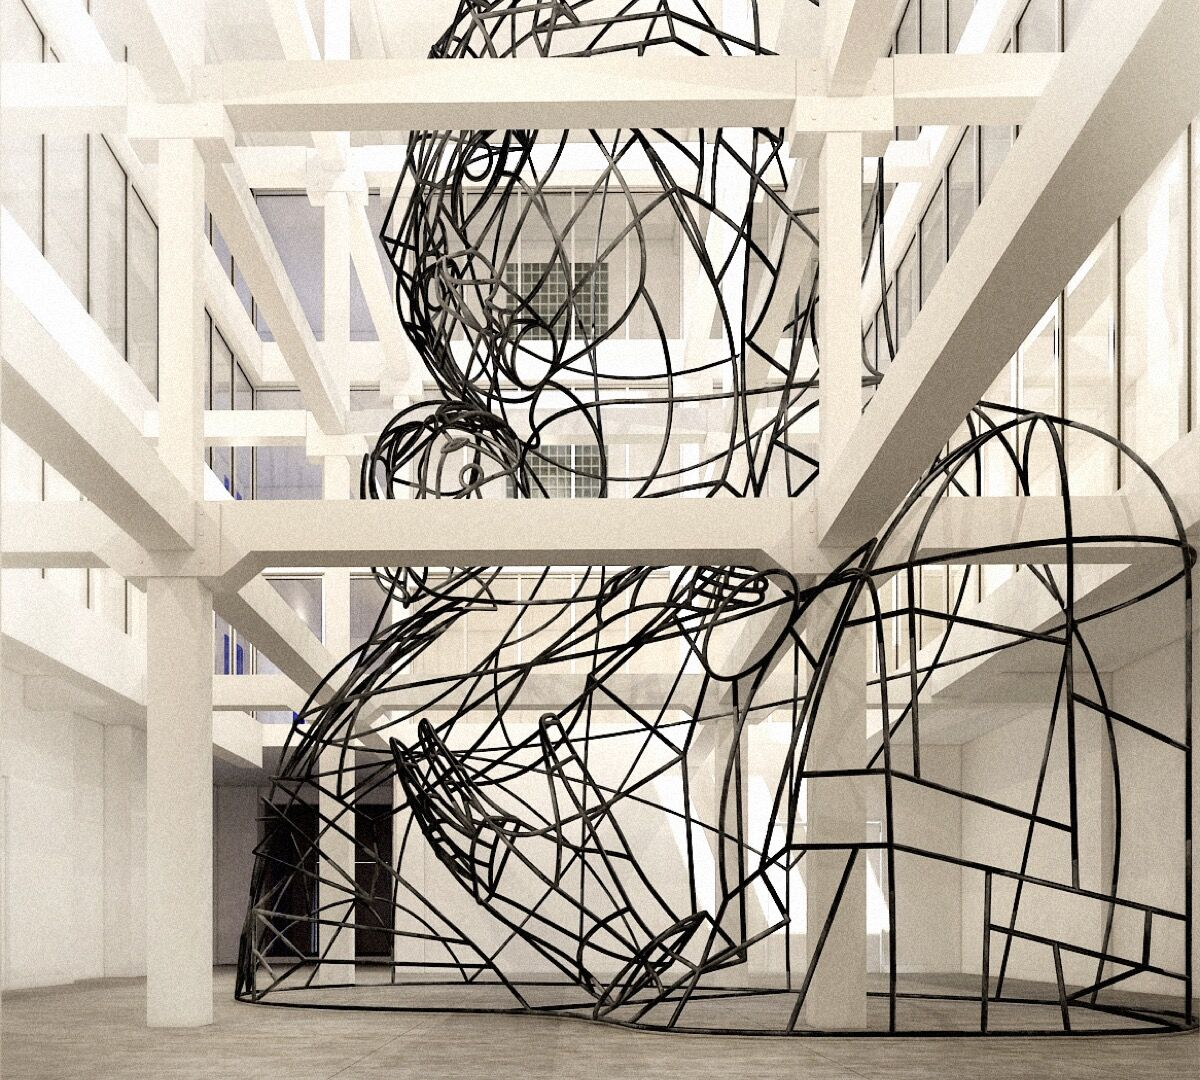 Installation view of Thomas Bayrle's Wire Madonna. Photo courtesy of ICA Miami.